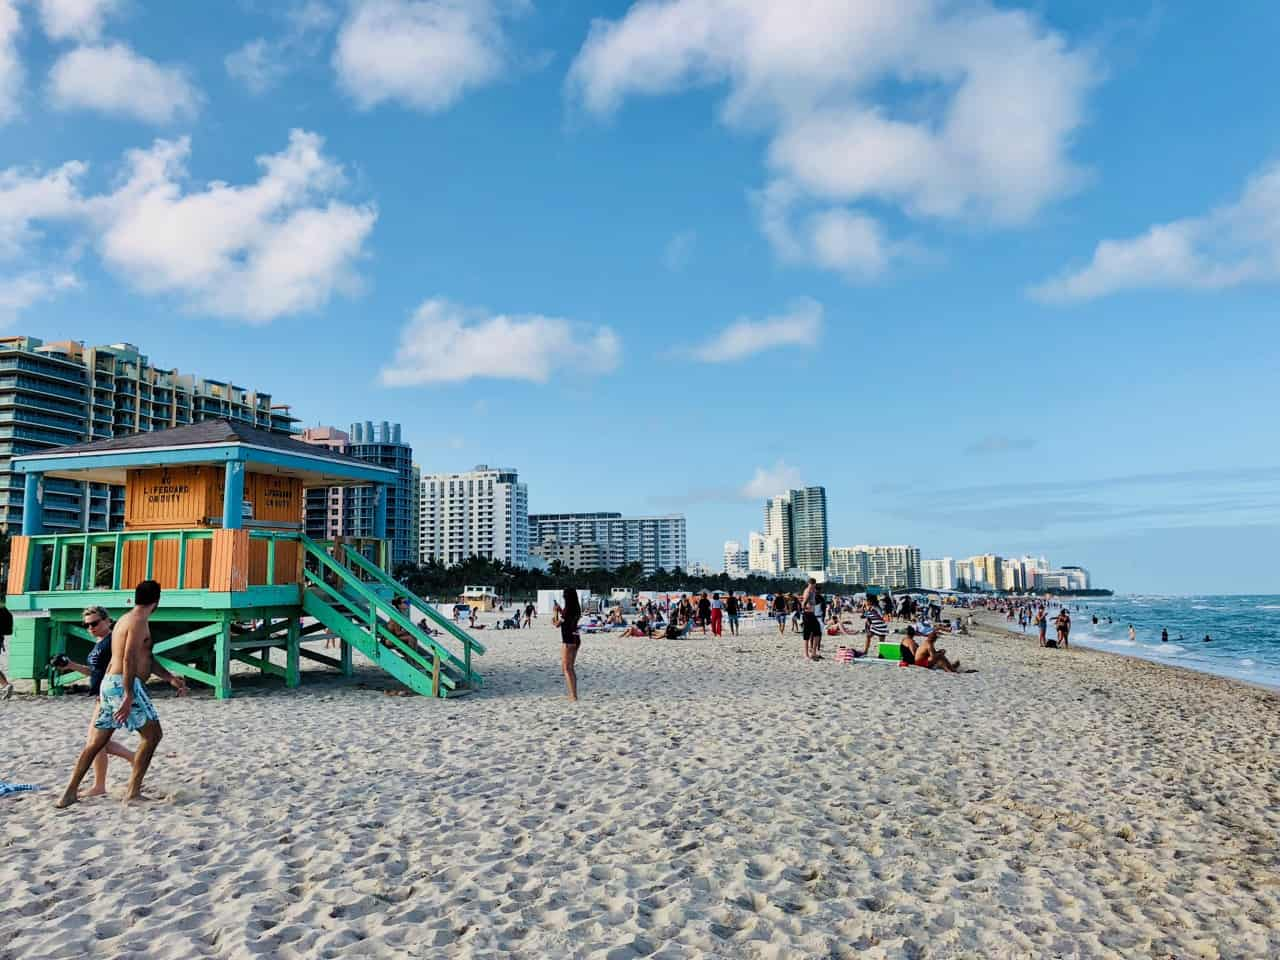 ArborCrowd Announces New Offering For Miami's Biscayne 112 Property